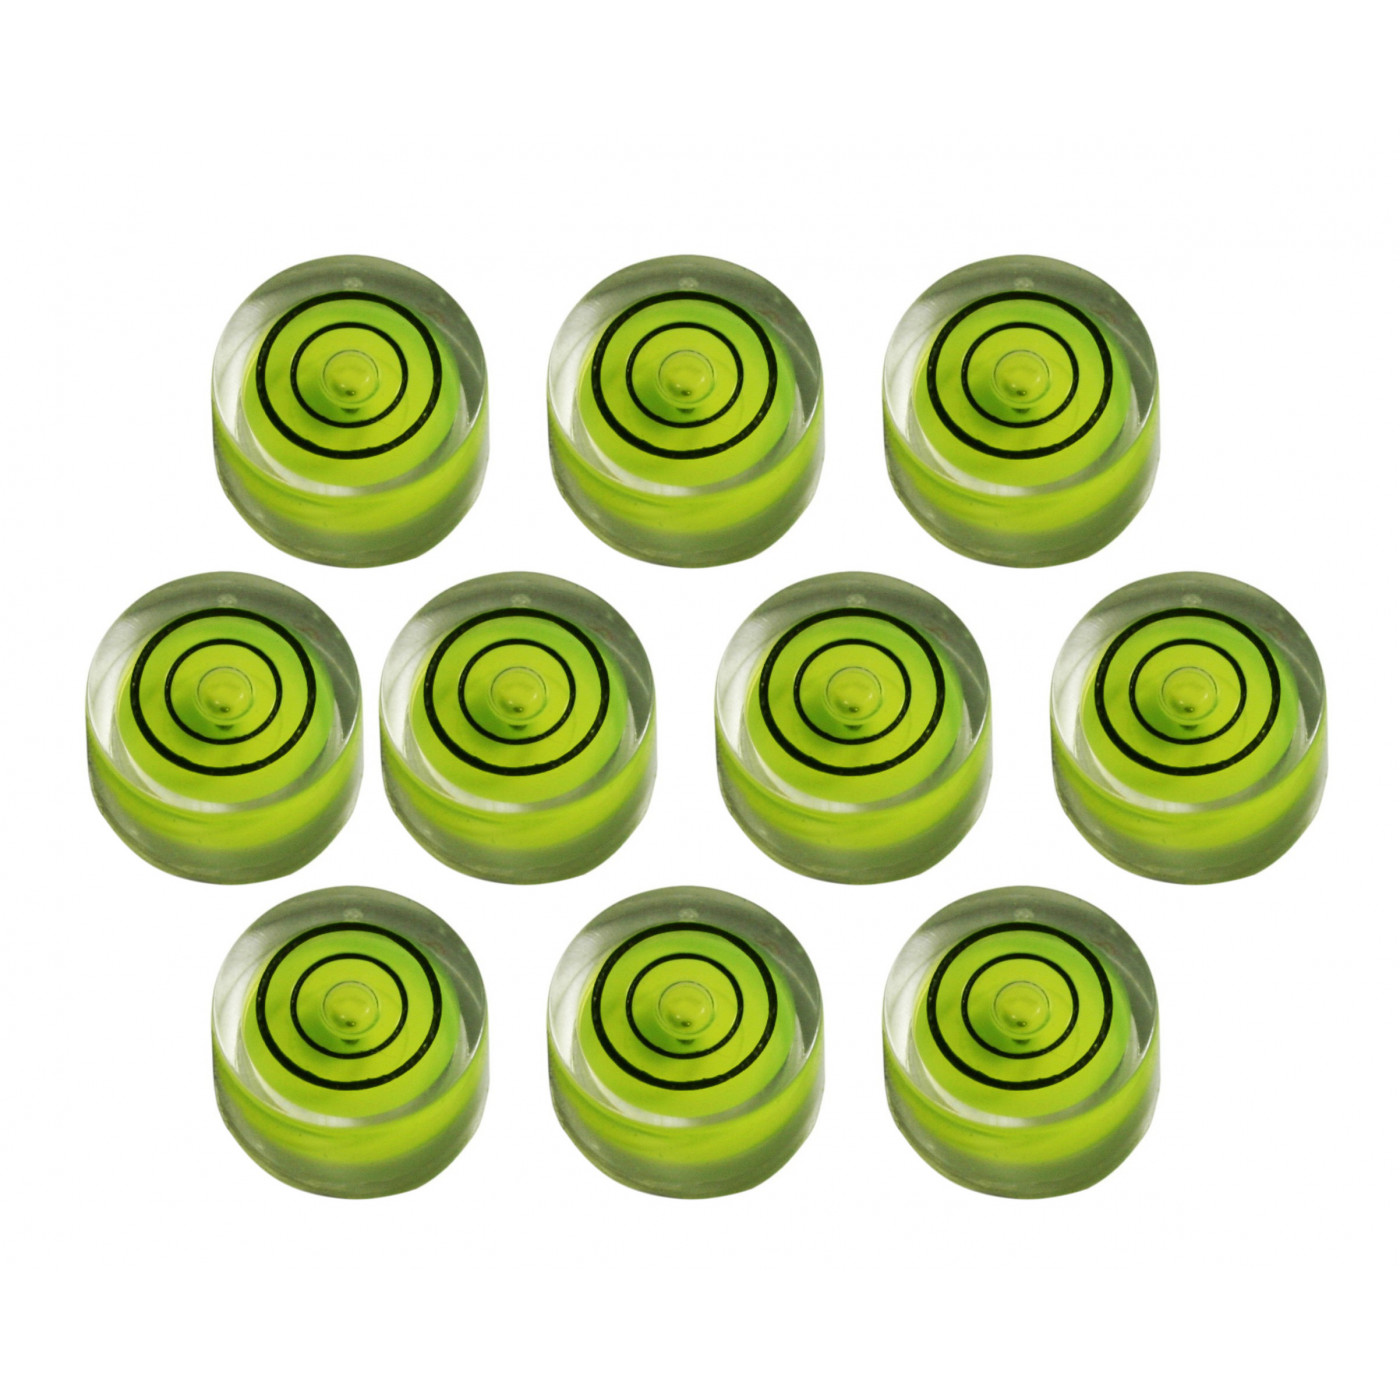 Set of 10 small round bubble levels size 8 (20x9 mm)